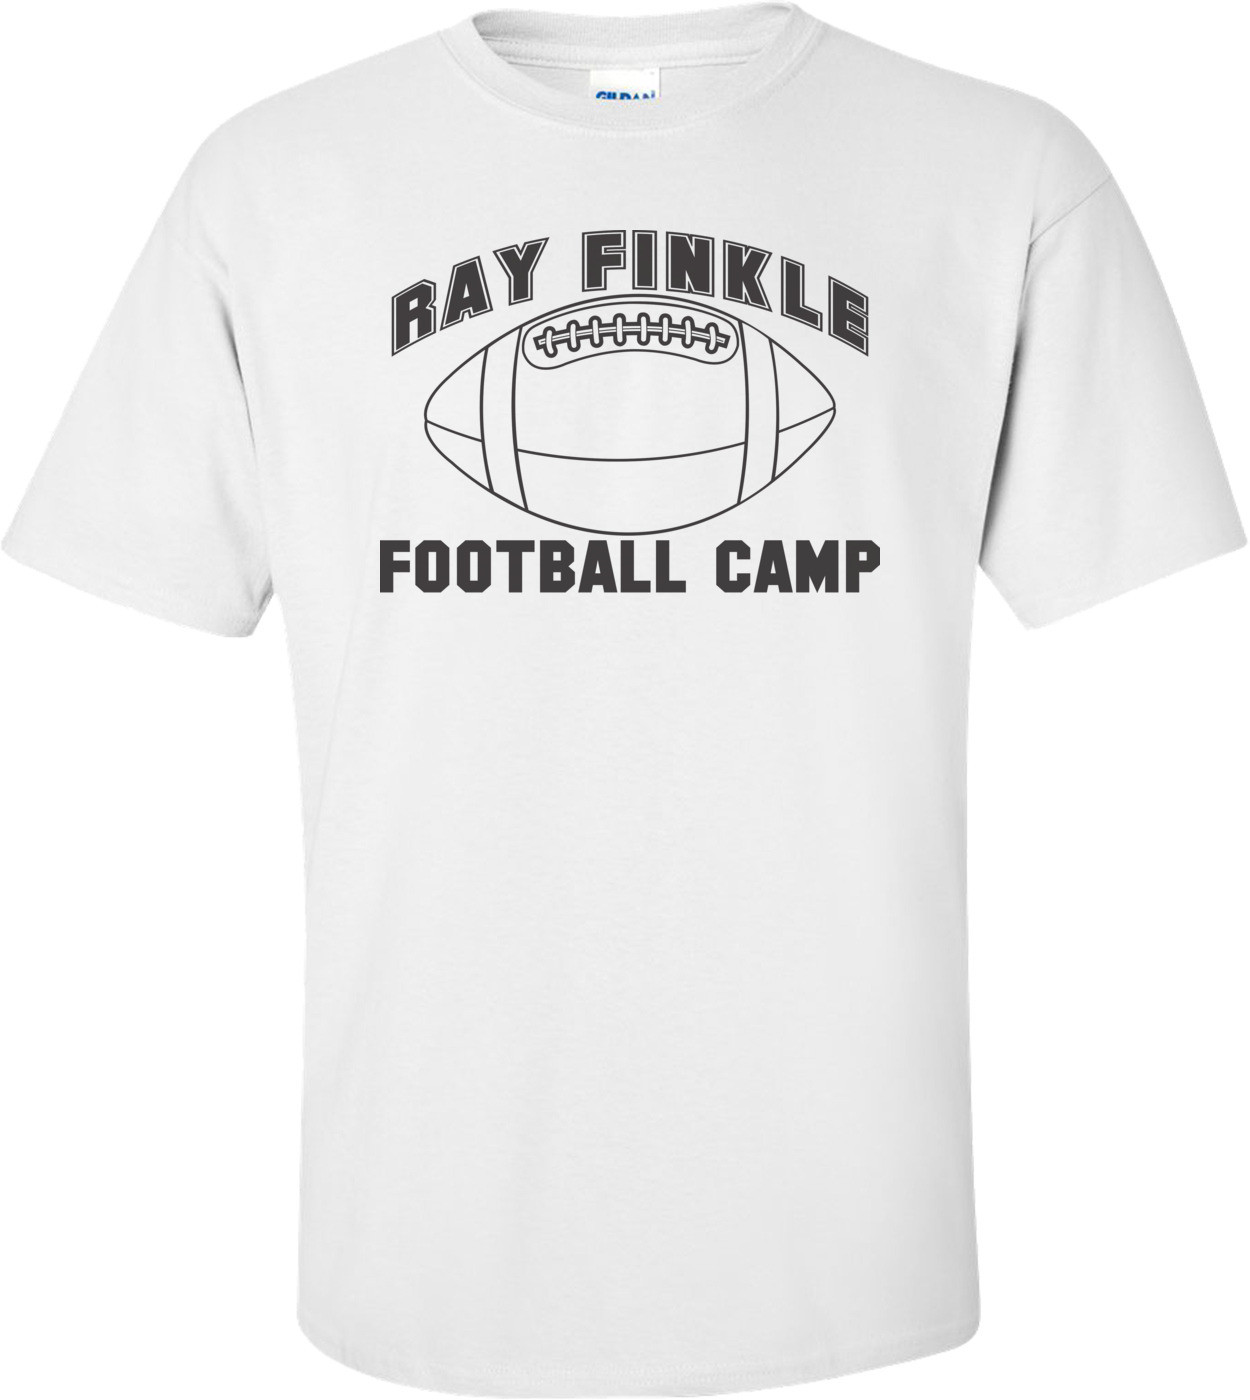 Ray Finkle Football Camp Laces Out T-shirt